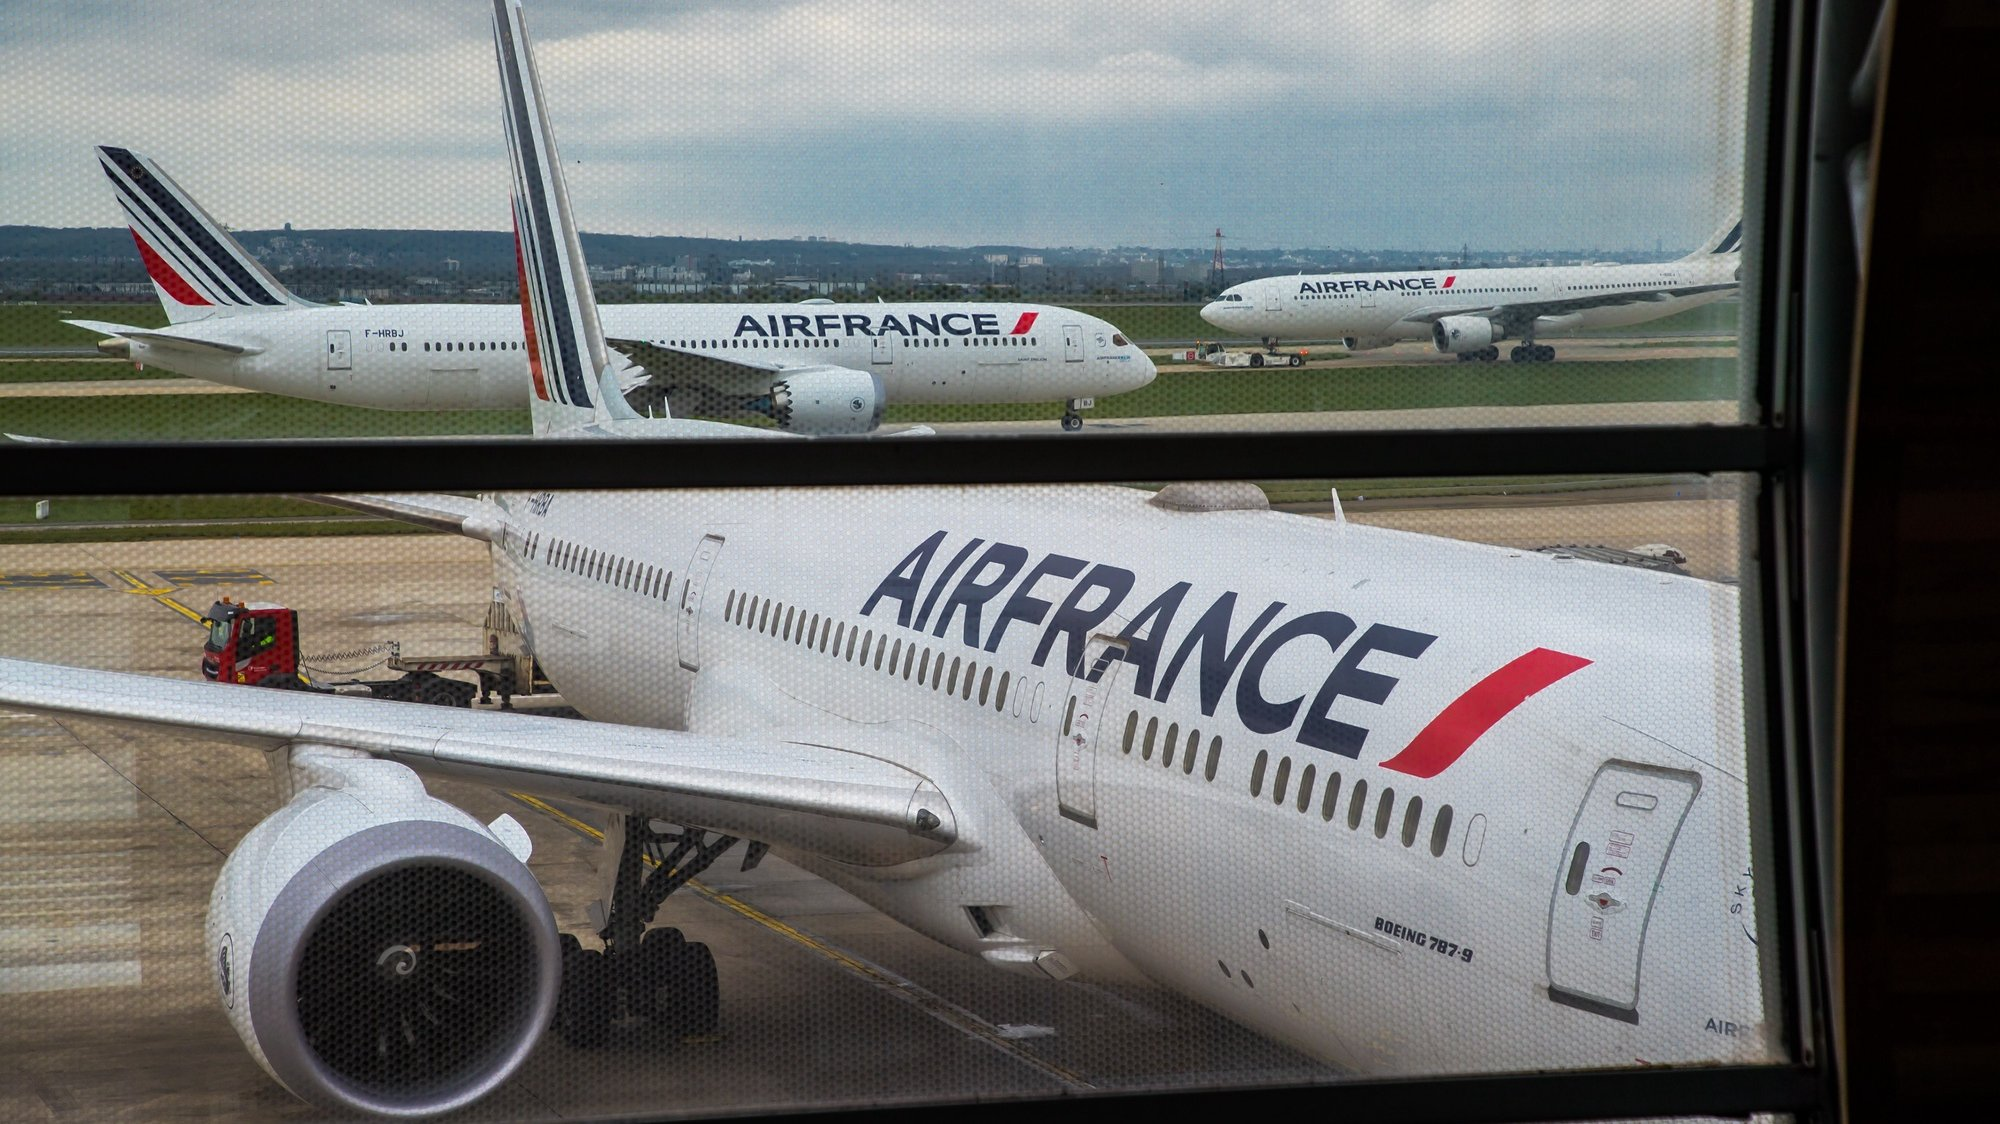 epa09130174 An Air France Boeing 787 bound for Bogota, Colombia,  awaiting loading  of Chinese vaccine SinoVac in Roissy Airport, near Paris, 11 April 2021 (issued 12 April 2021). Airline company Air France KLM Cargo, operated two flies to Cameroon and Colombia with a shipment of Chinese covid19 vaccines SinoPharm and SinoVac through its cargo area of Roissy airport (CDG).  EPA/CHRISTOPHE PETIT TESSON